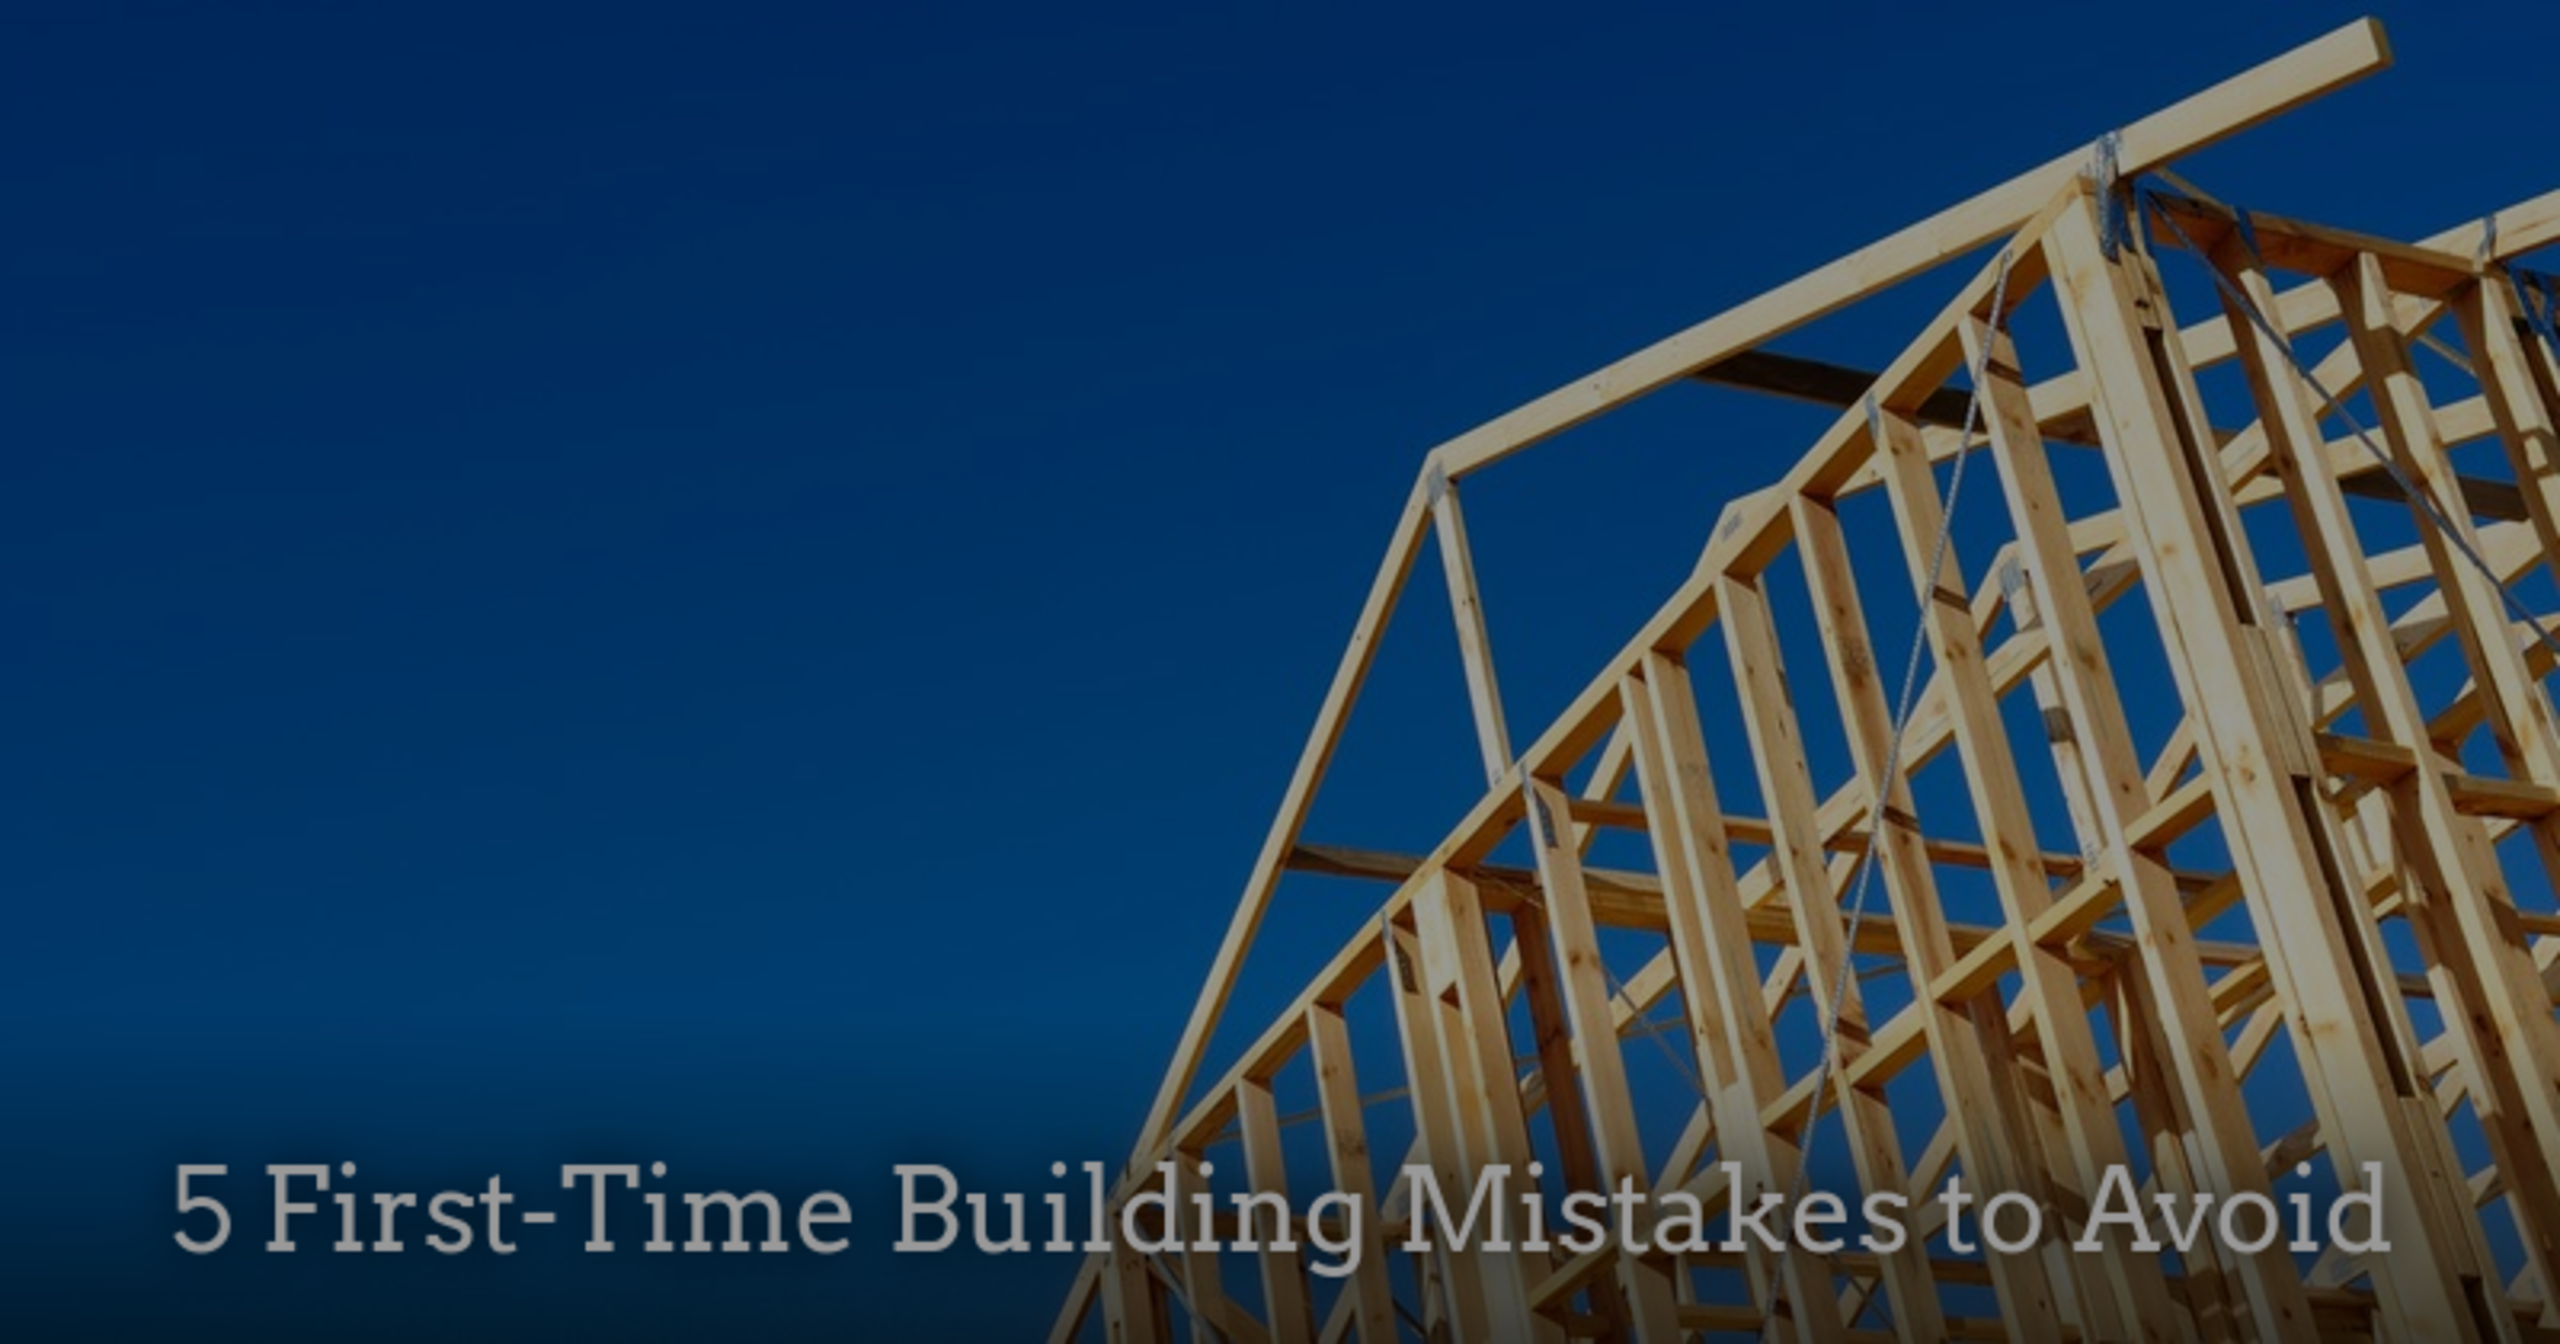 5 First-Time Building Mistakes to Avoid